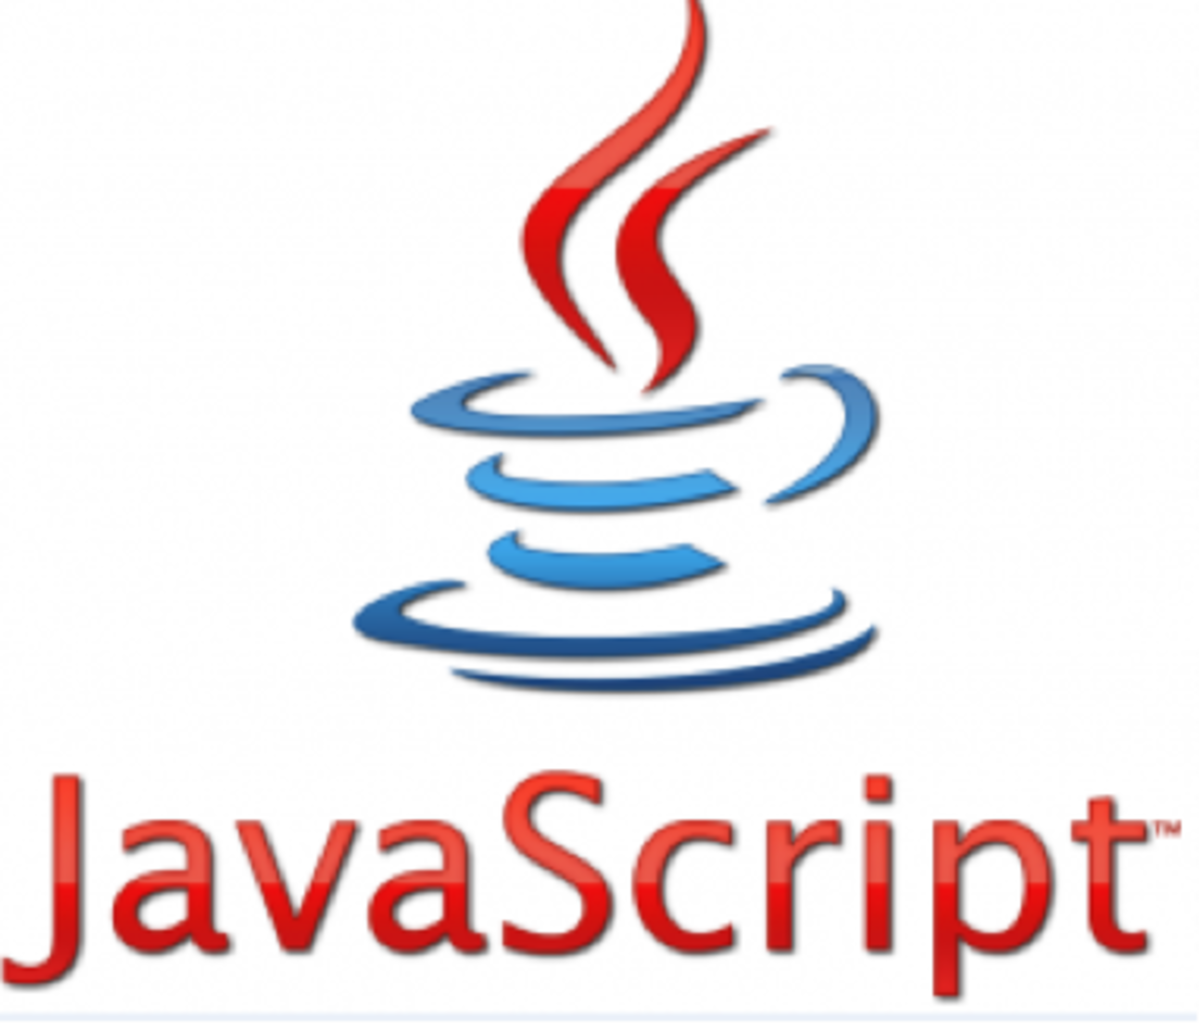 What Is Javascript and Where It Is Used?